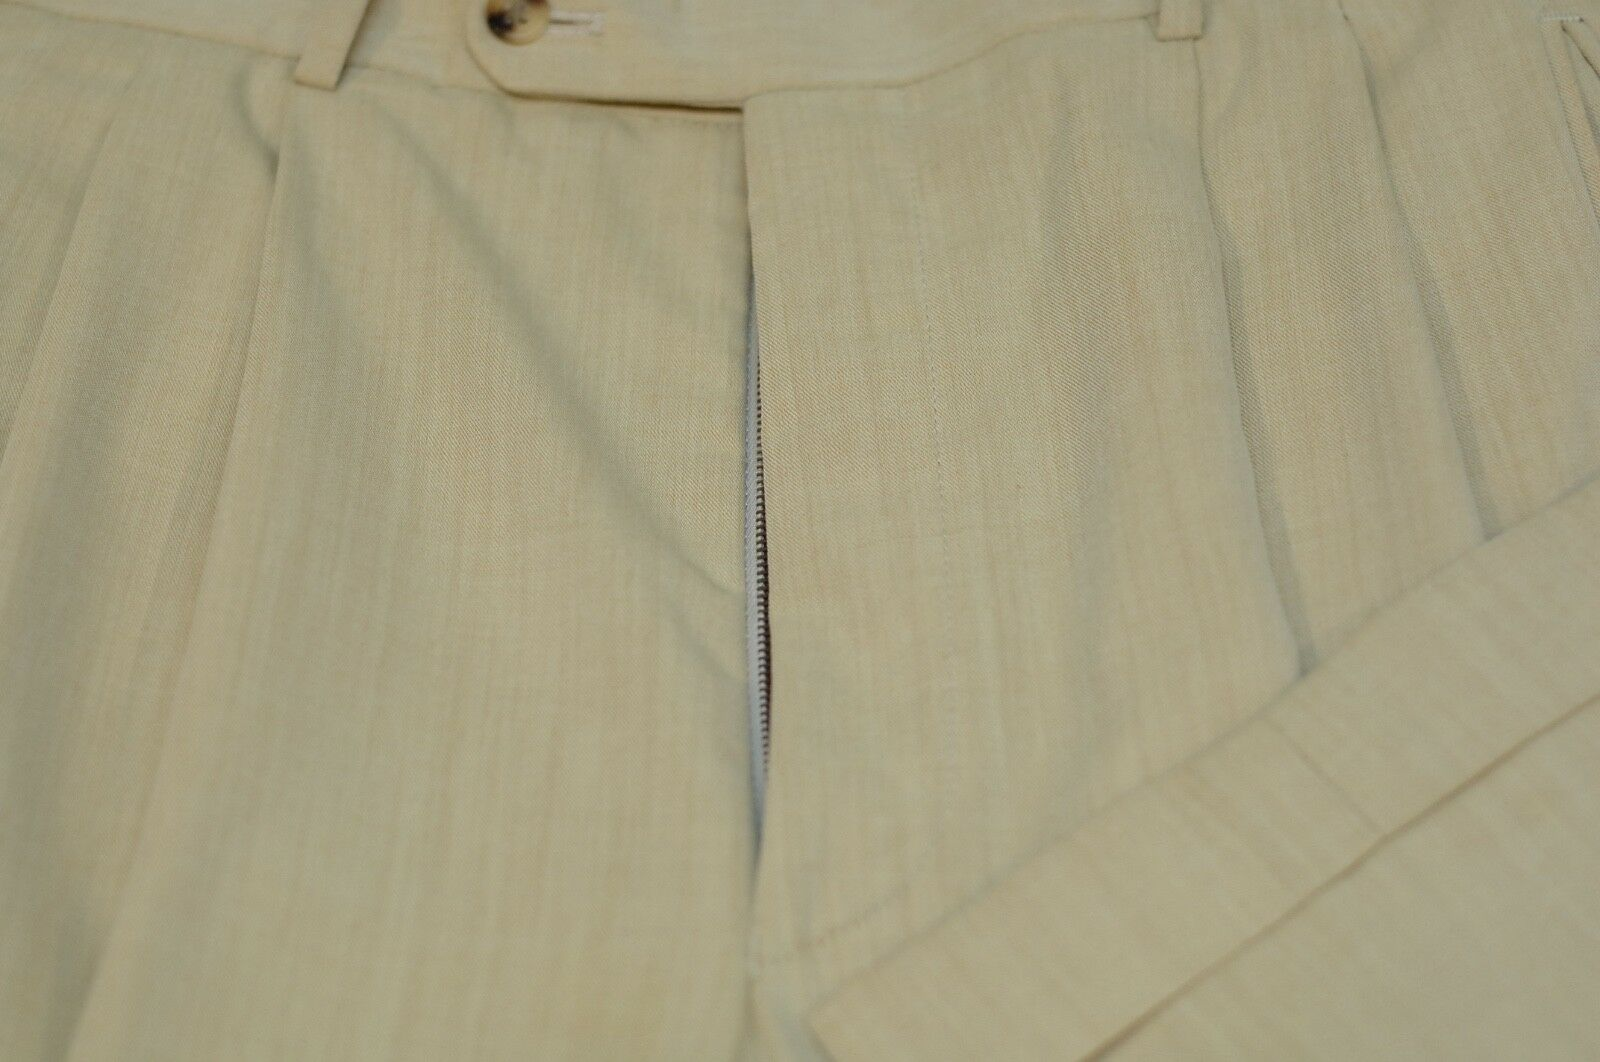 Hiltl Men's Beige Twill All Season Wool Pleated Dress Pants 36 x 32